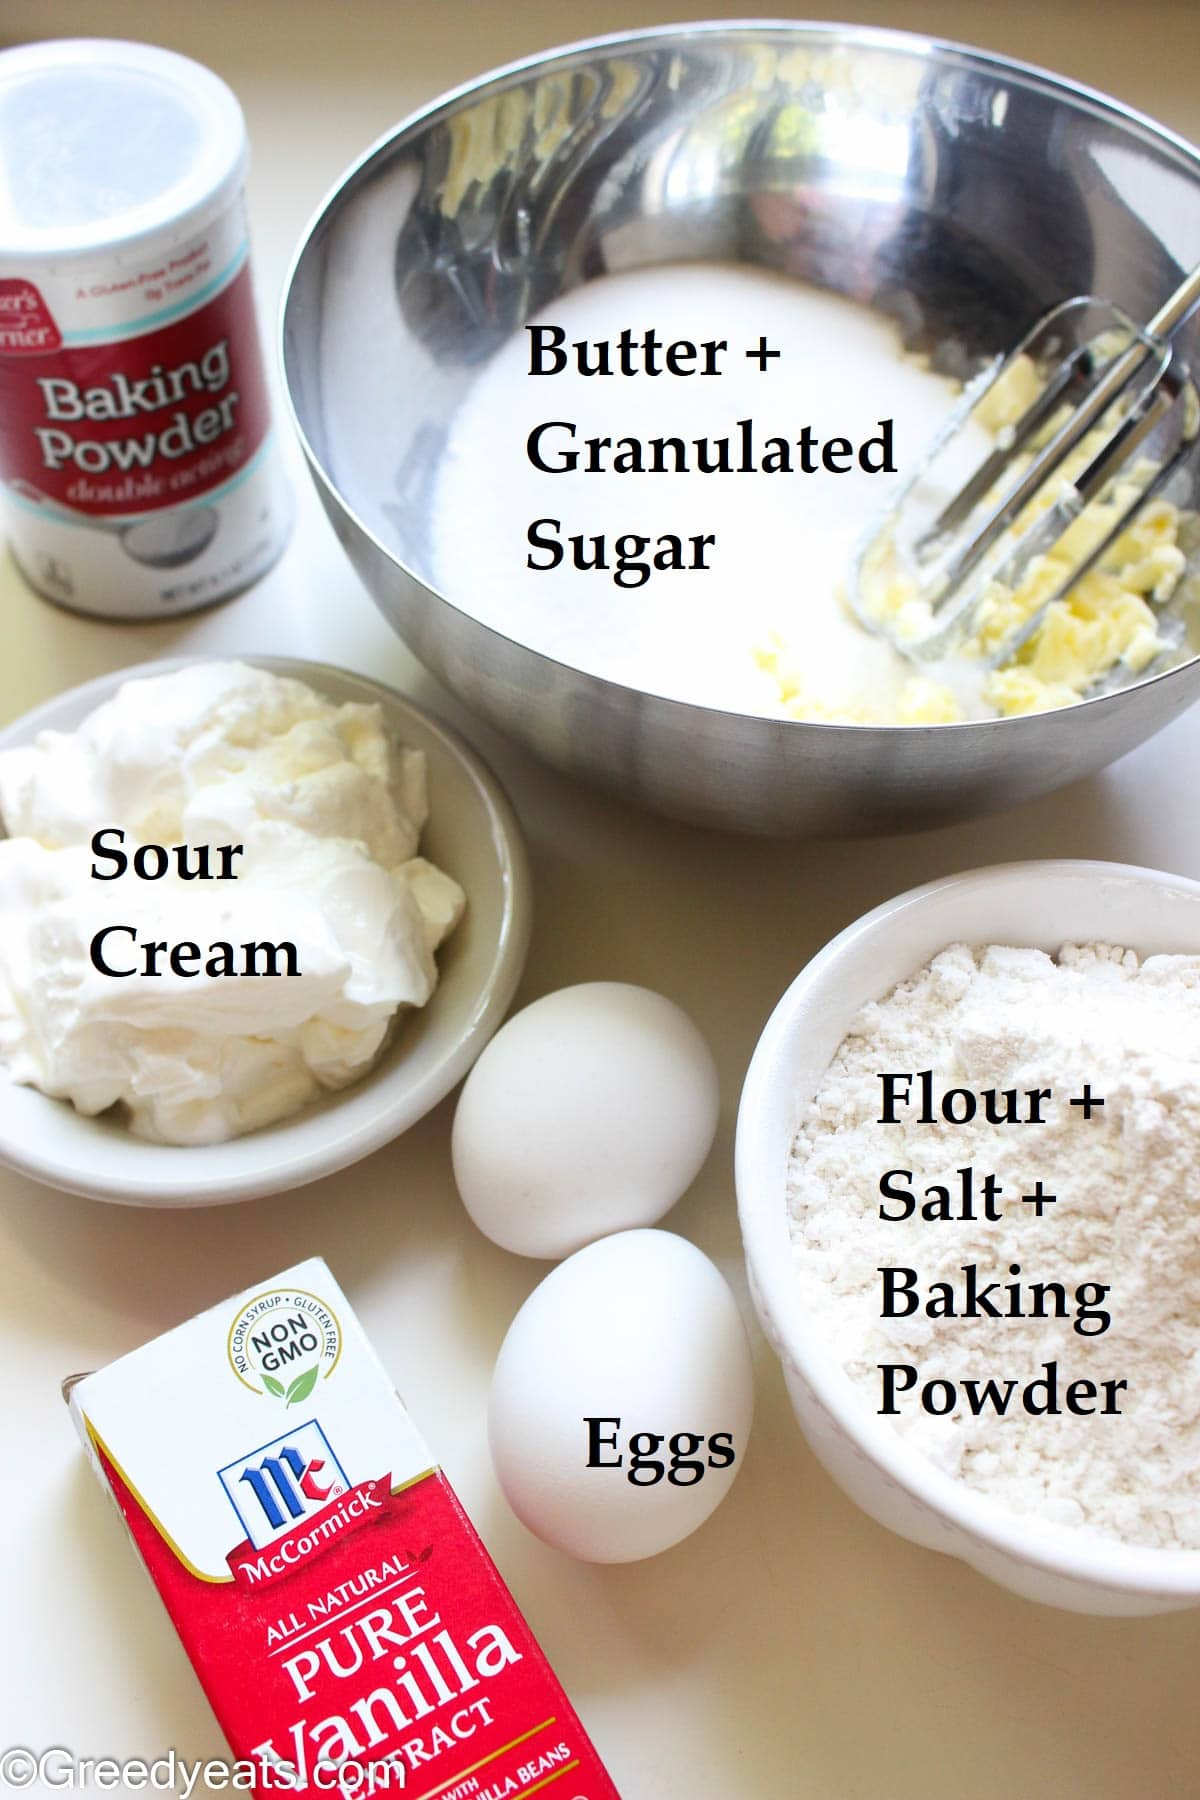 Ingredients like butter, sugar, flour, eggs and sour cream to make confetti cupcakes.